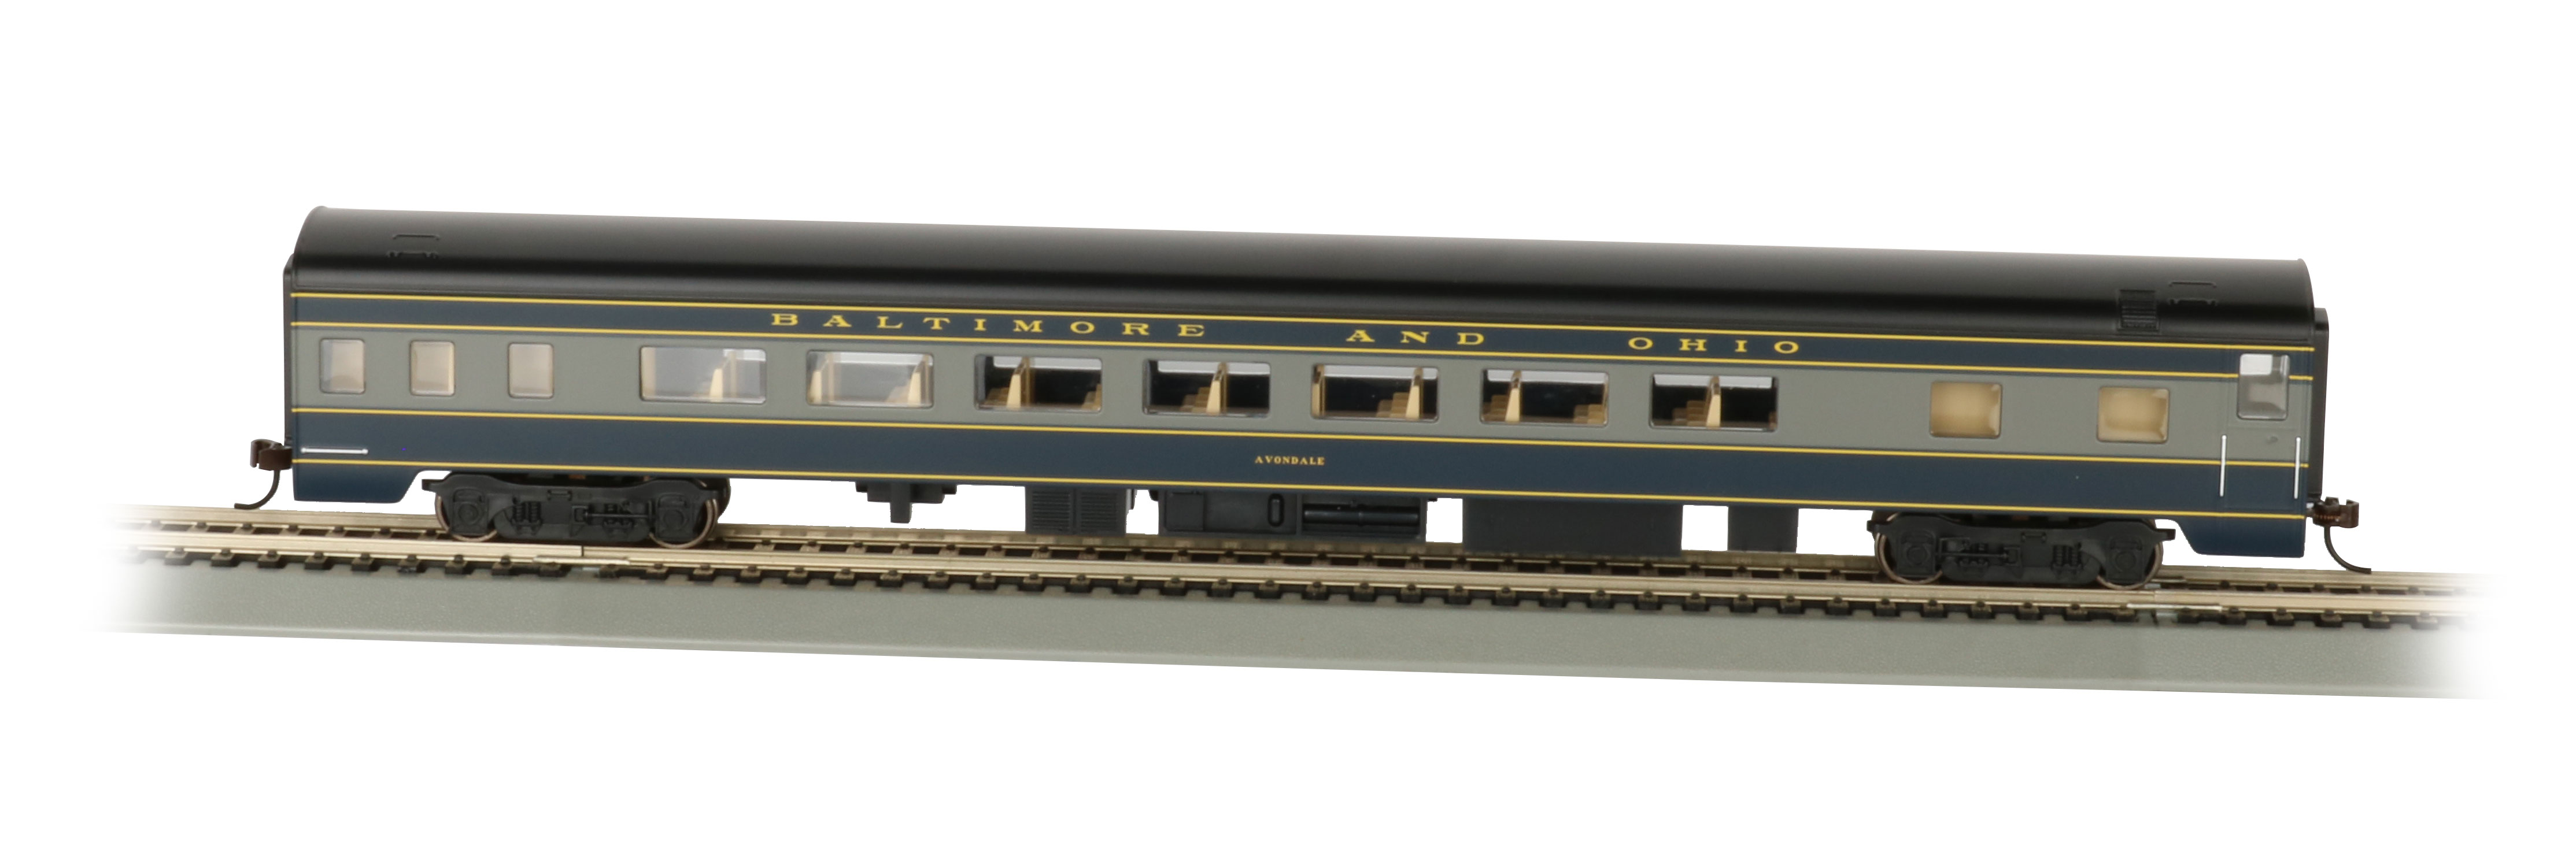 B&O® Smooth-Side Coach w/ Lighted Interior (HO)